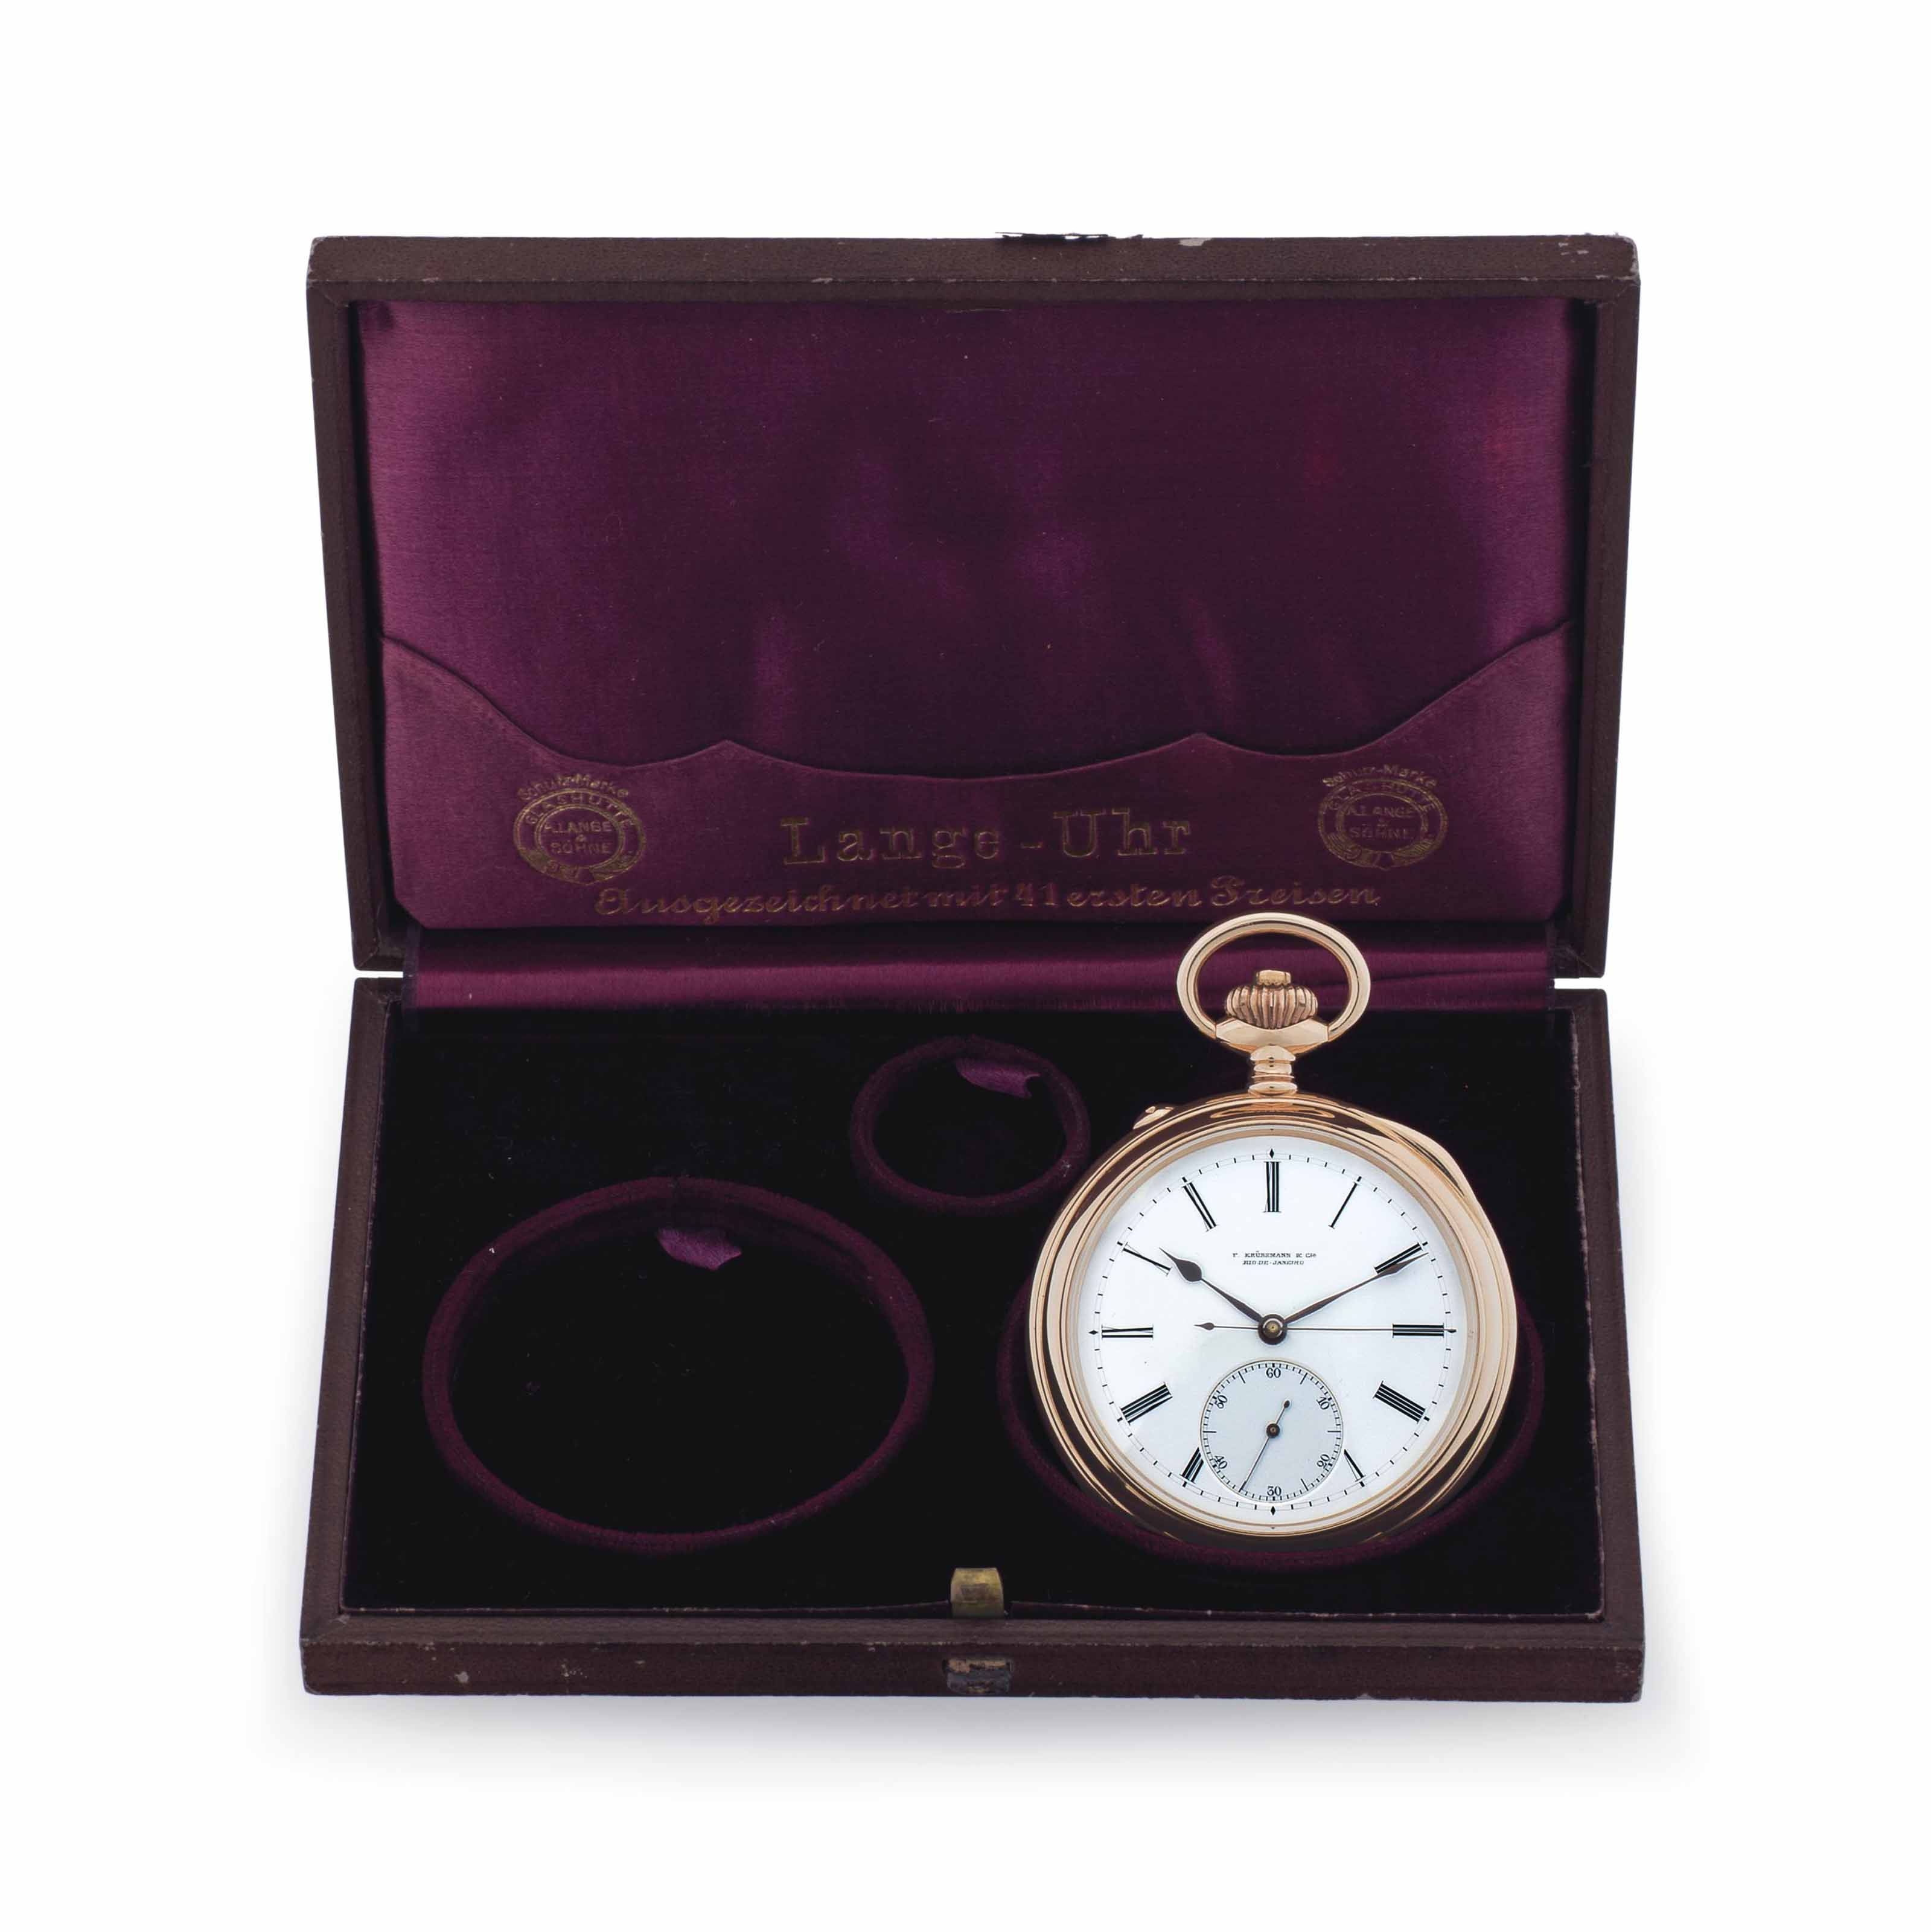 A. Lange & Söhne. A Fine 18k Pink Gold Openface Keyless Lever Pocket Watch with Deadbeat Seconds Made for the South American Market